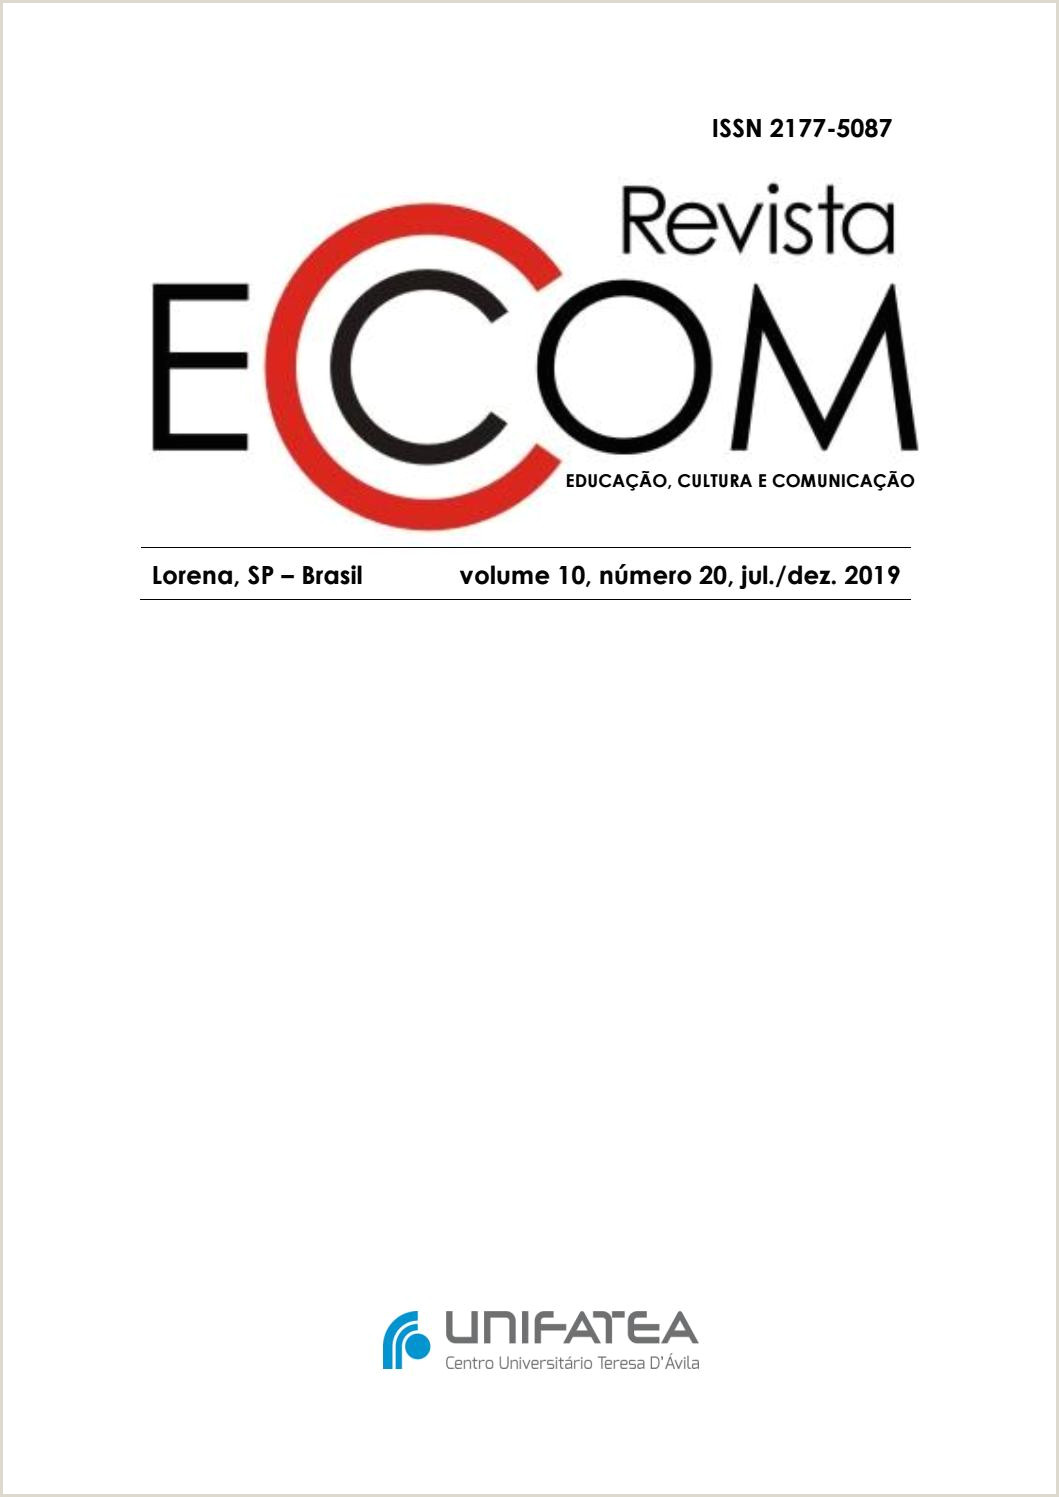 EC 20 – Revista de Educa§£o Cultura e unica§£o by